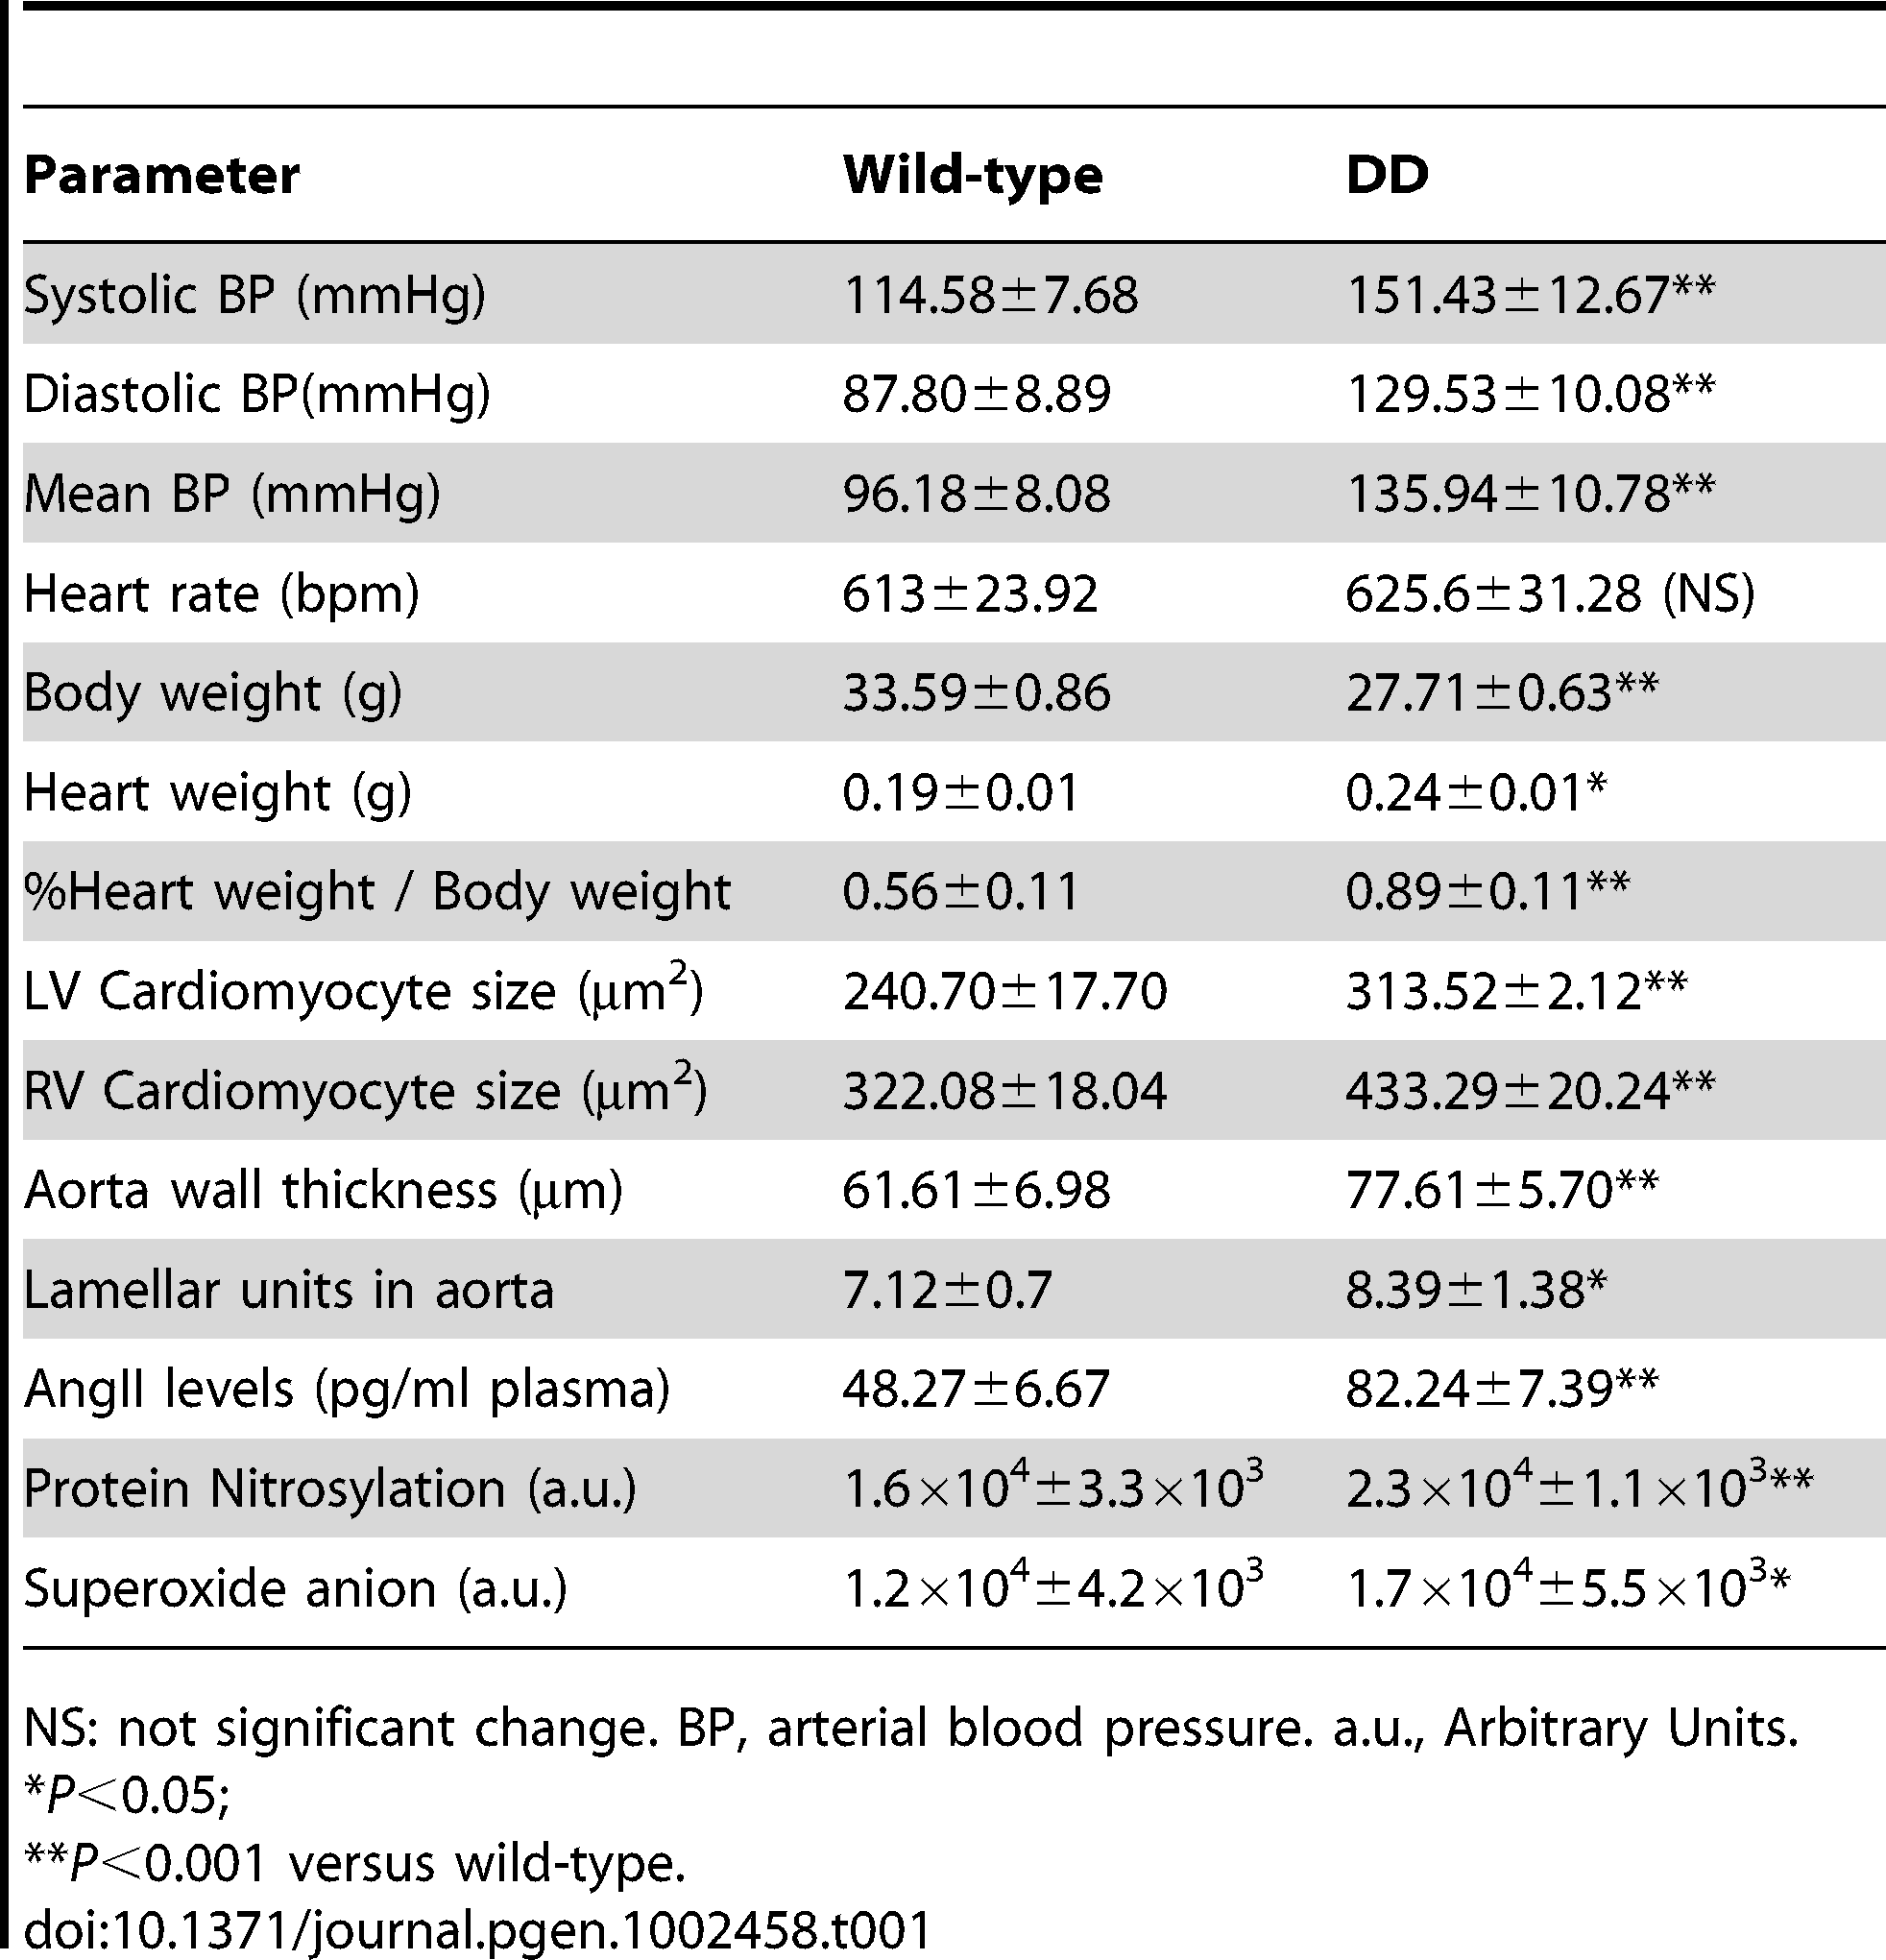 Cardiovascular parameters of 16-week-old wild-type and DD mutant mice.